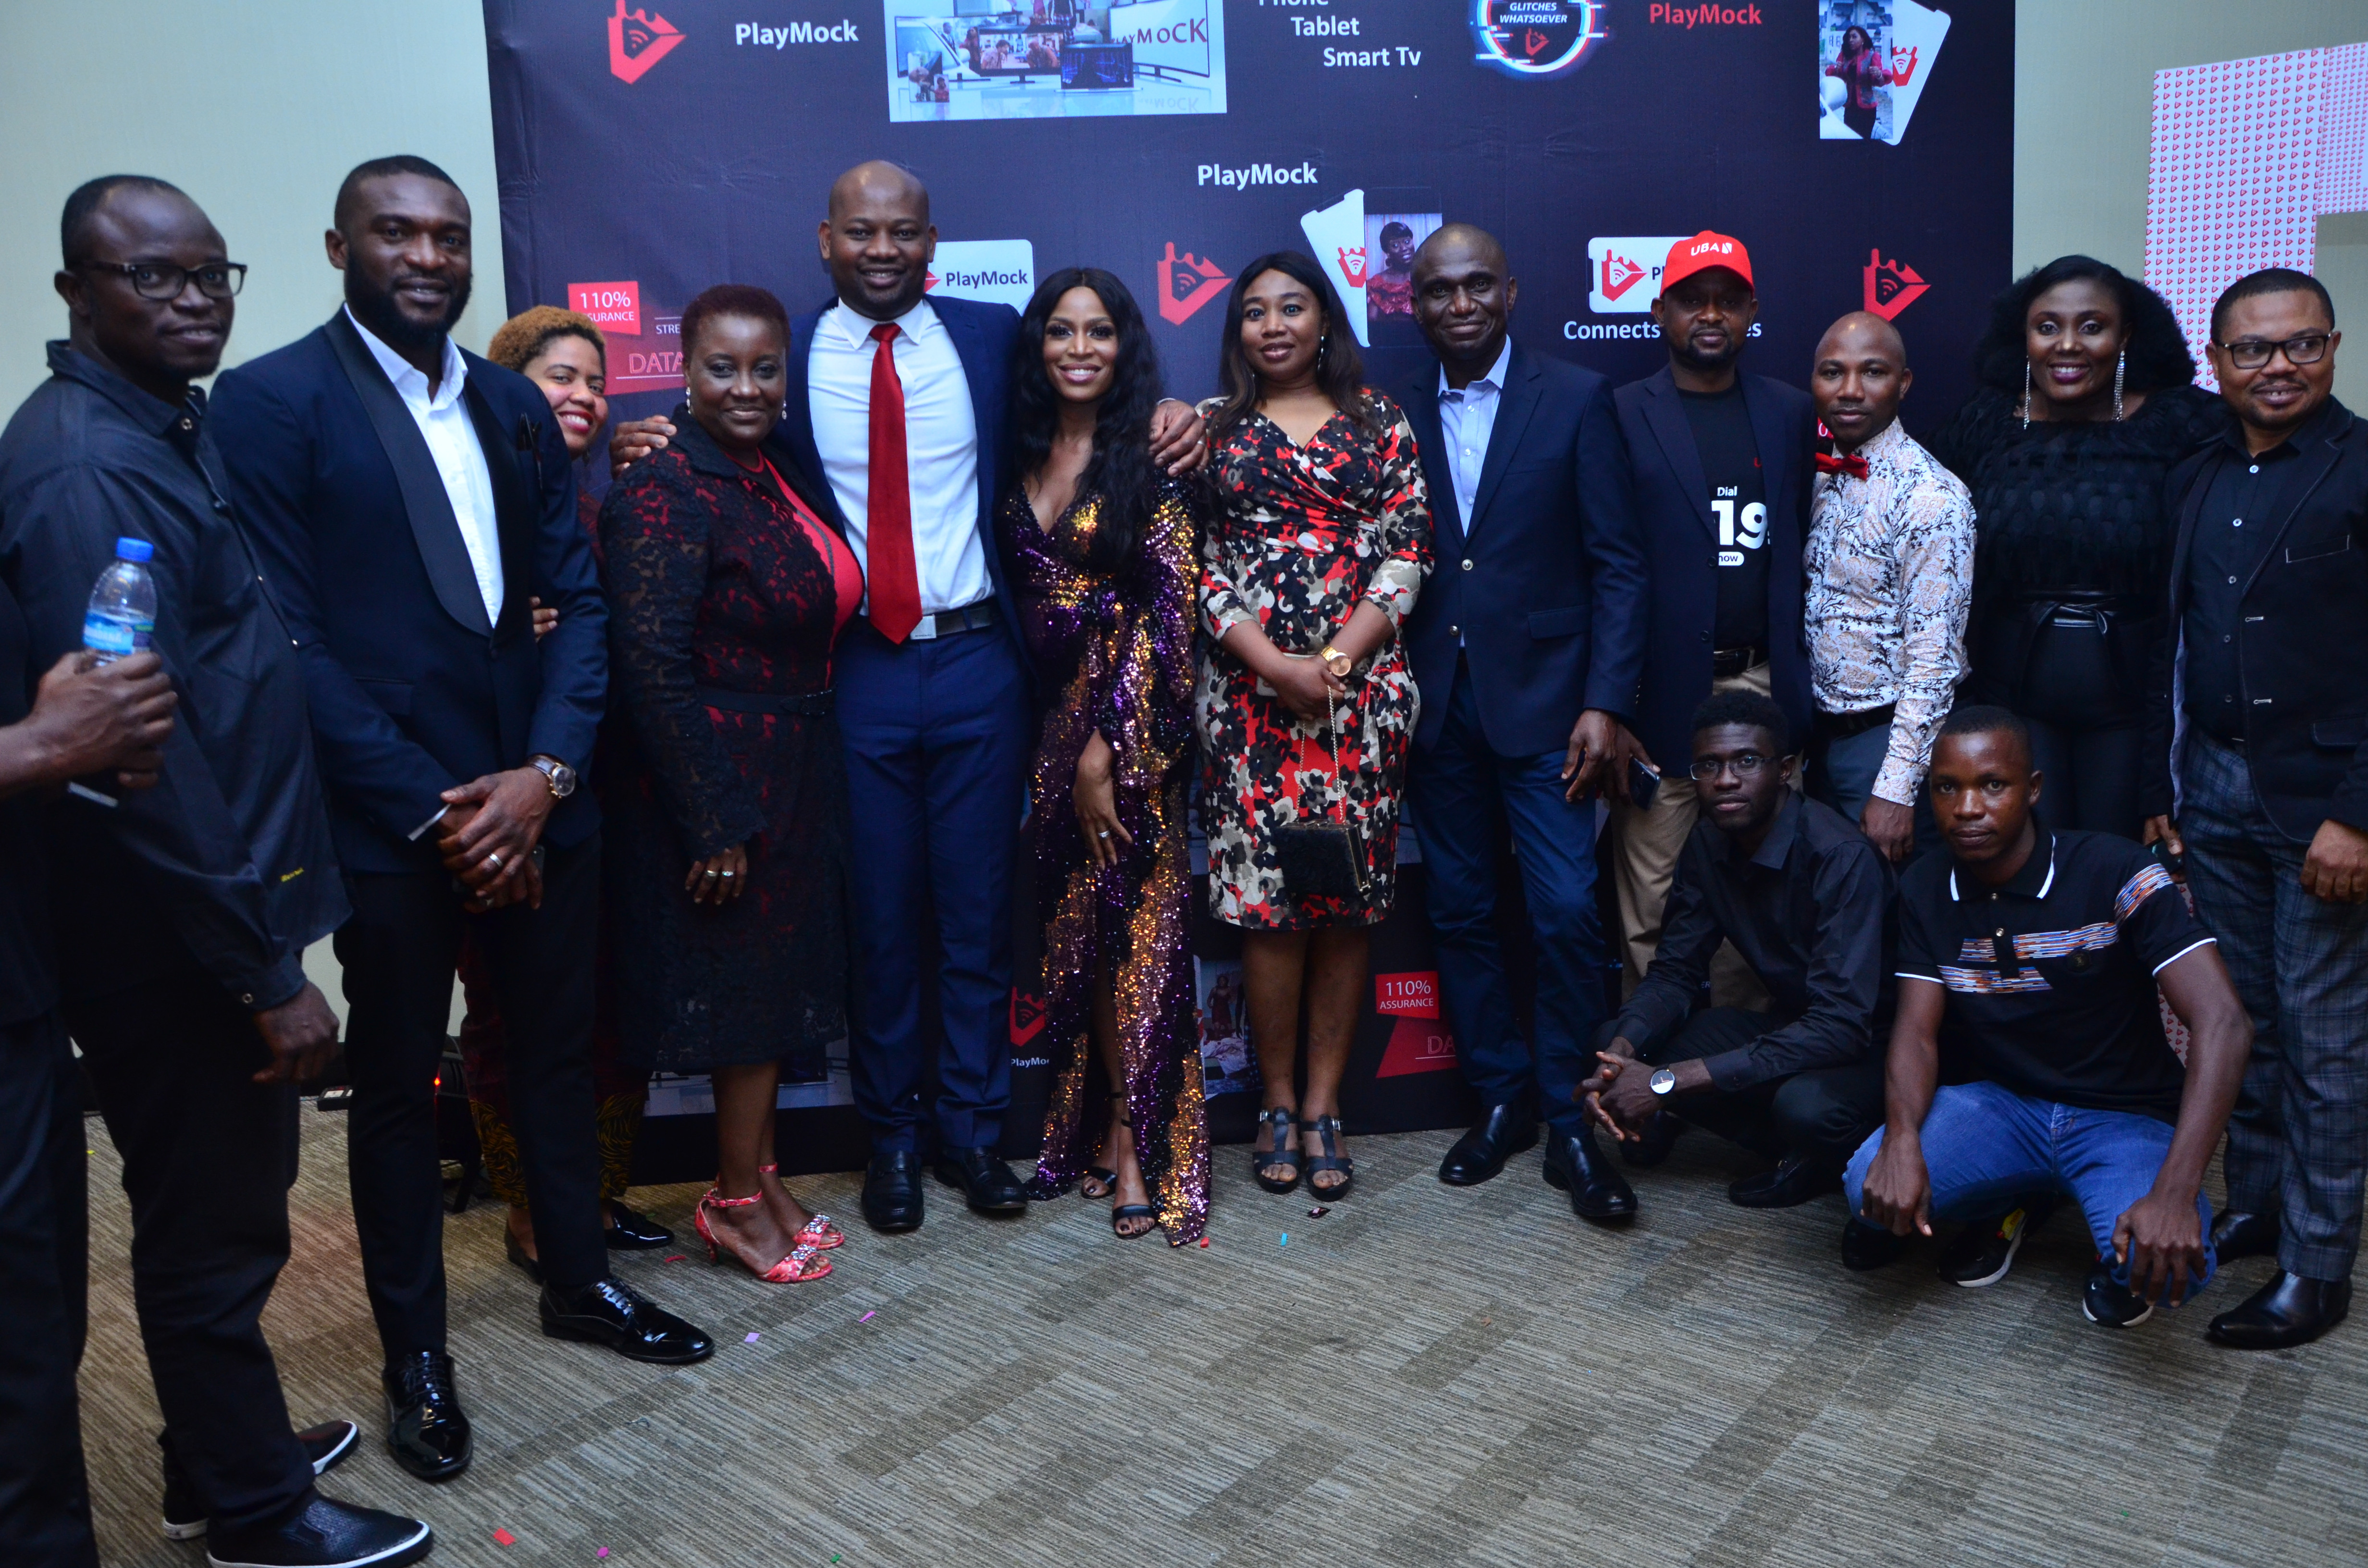 Firm launches data-free media streaming platform to boost Nigerias film industry